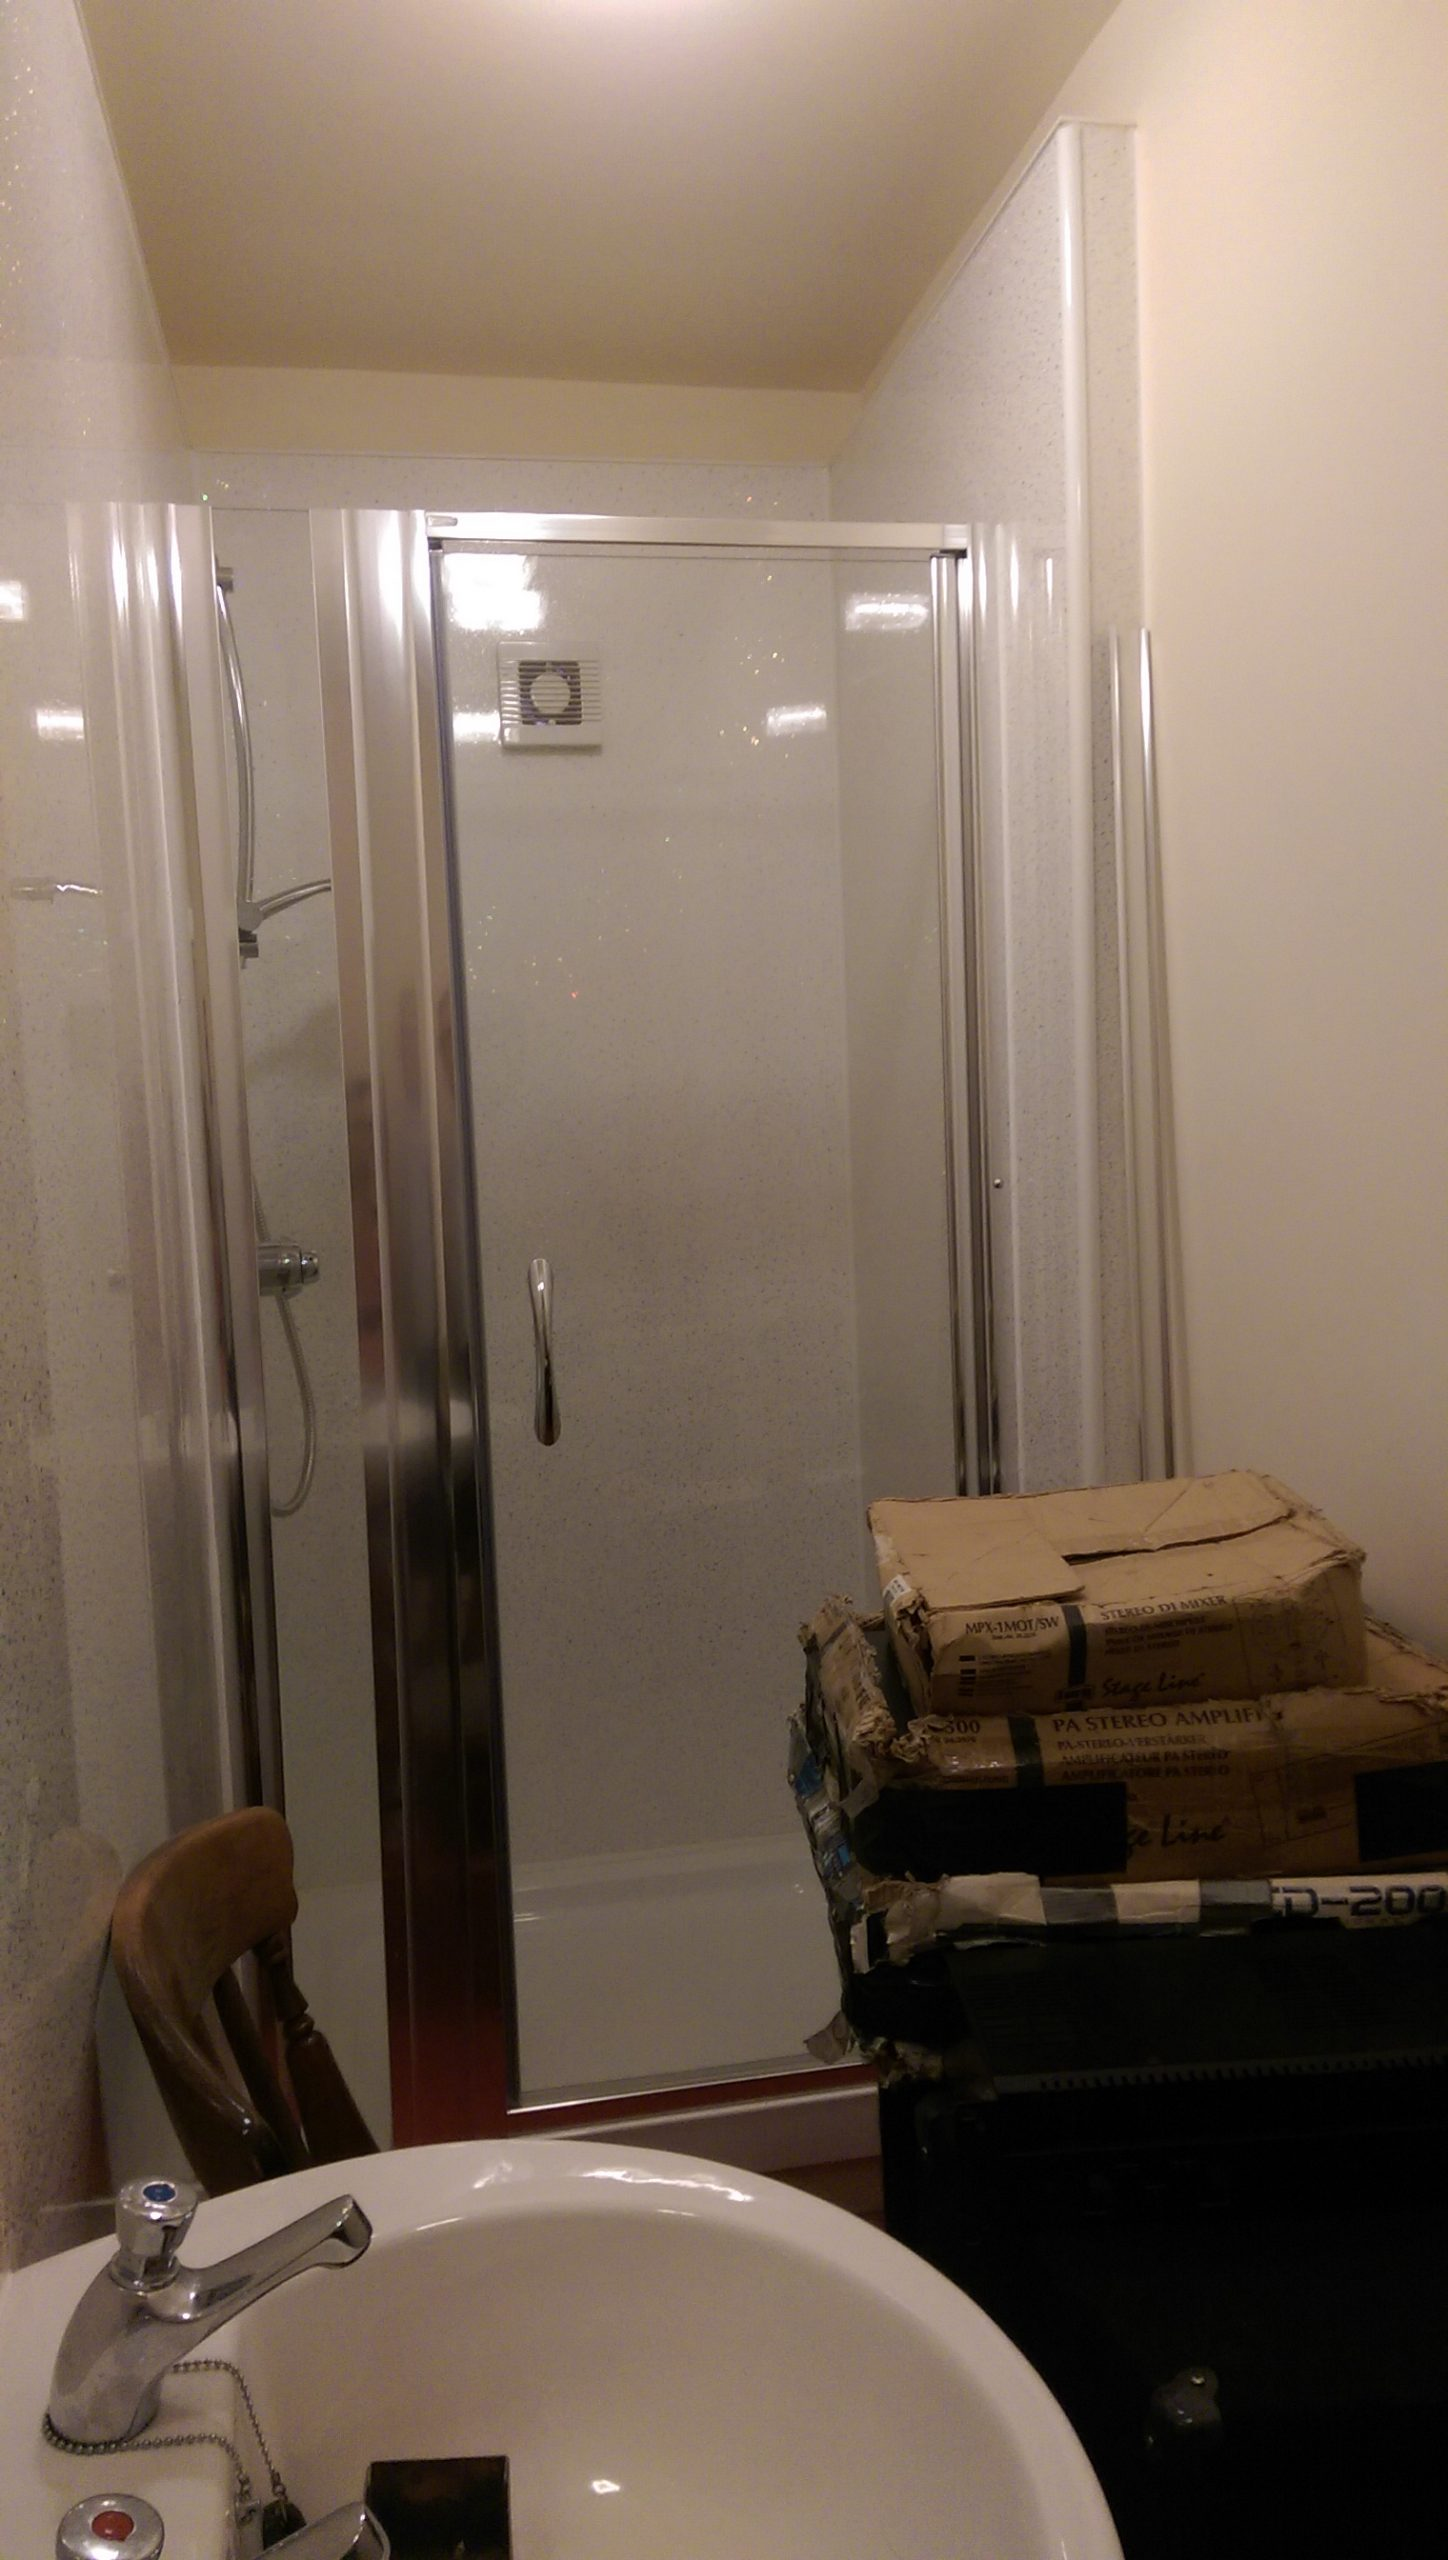 Shower room almost finished